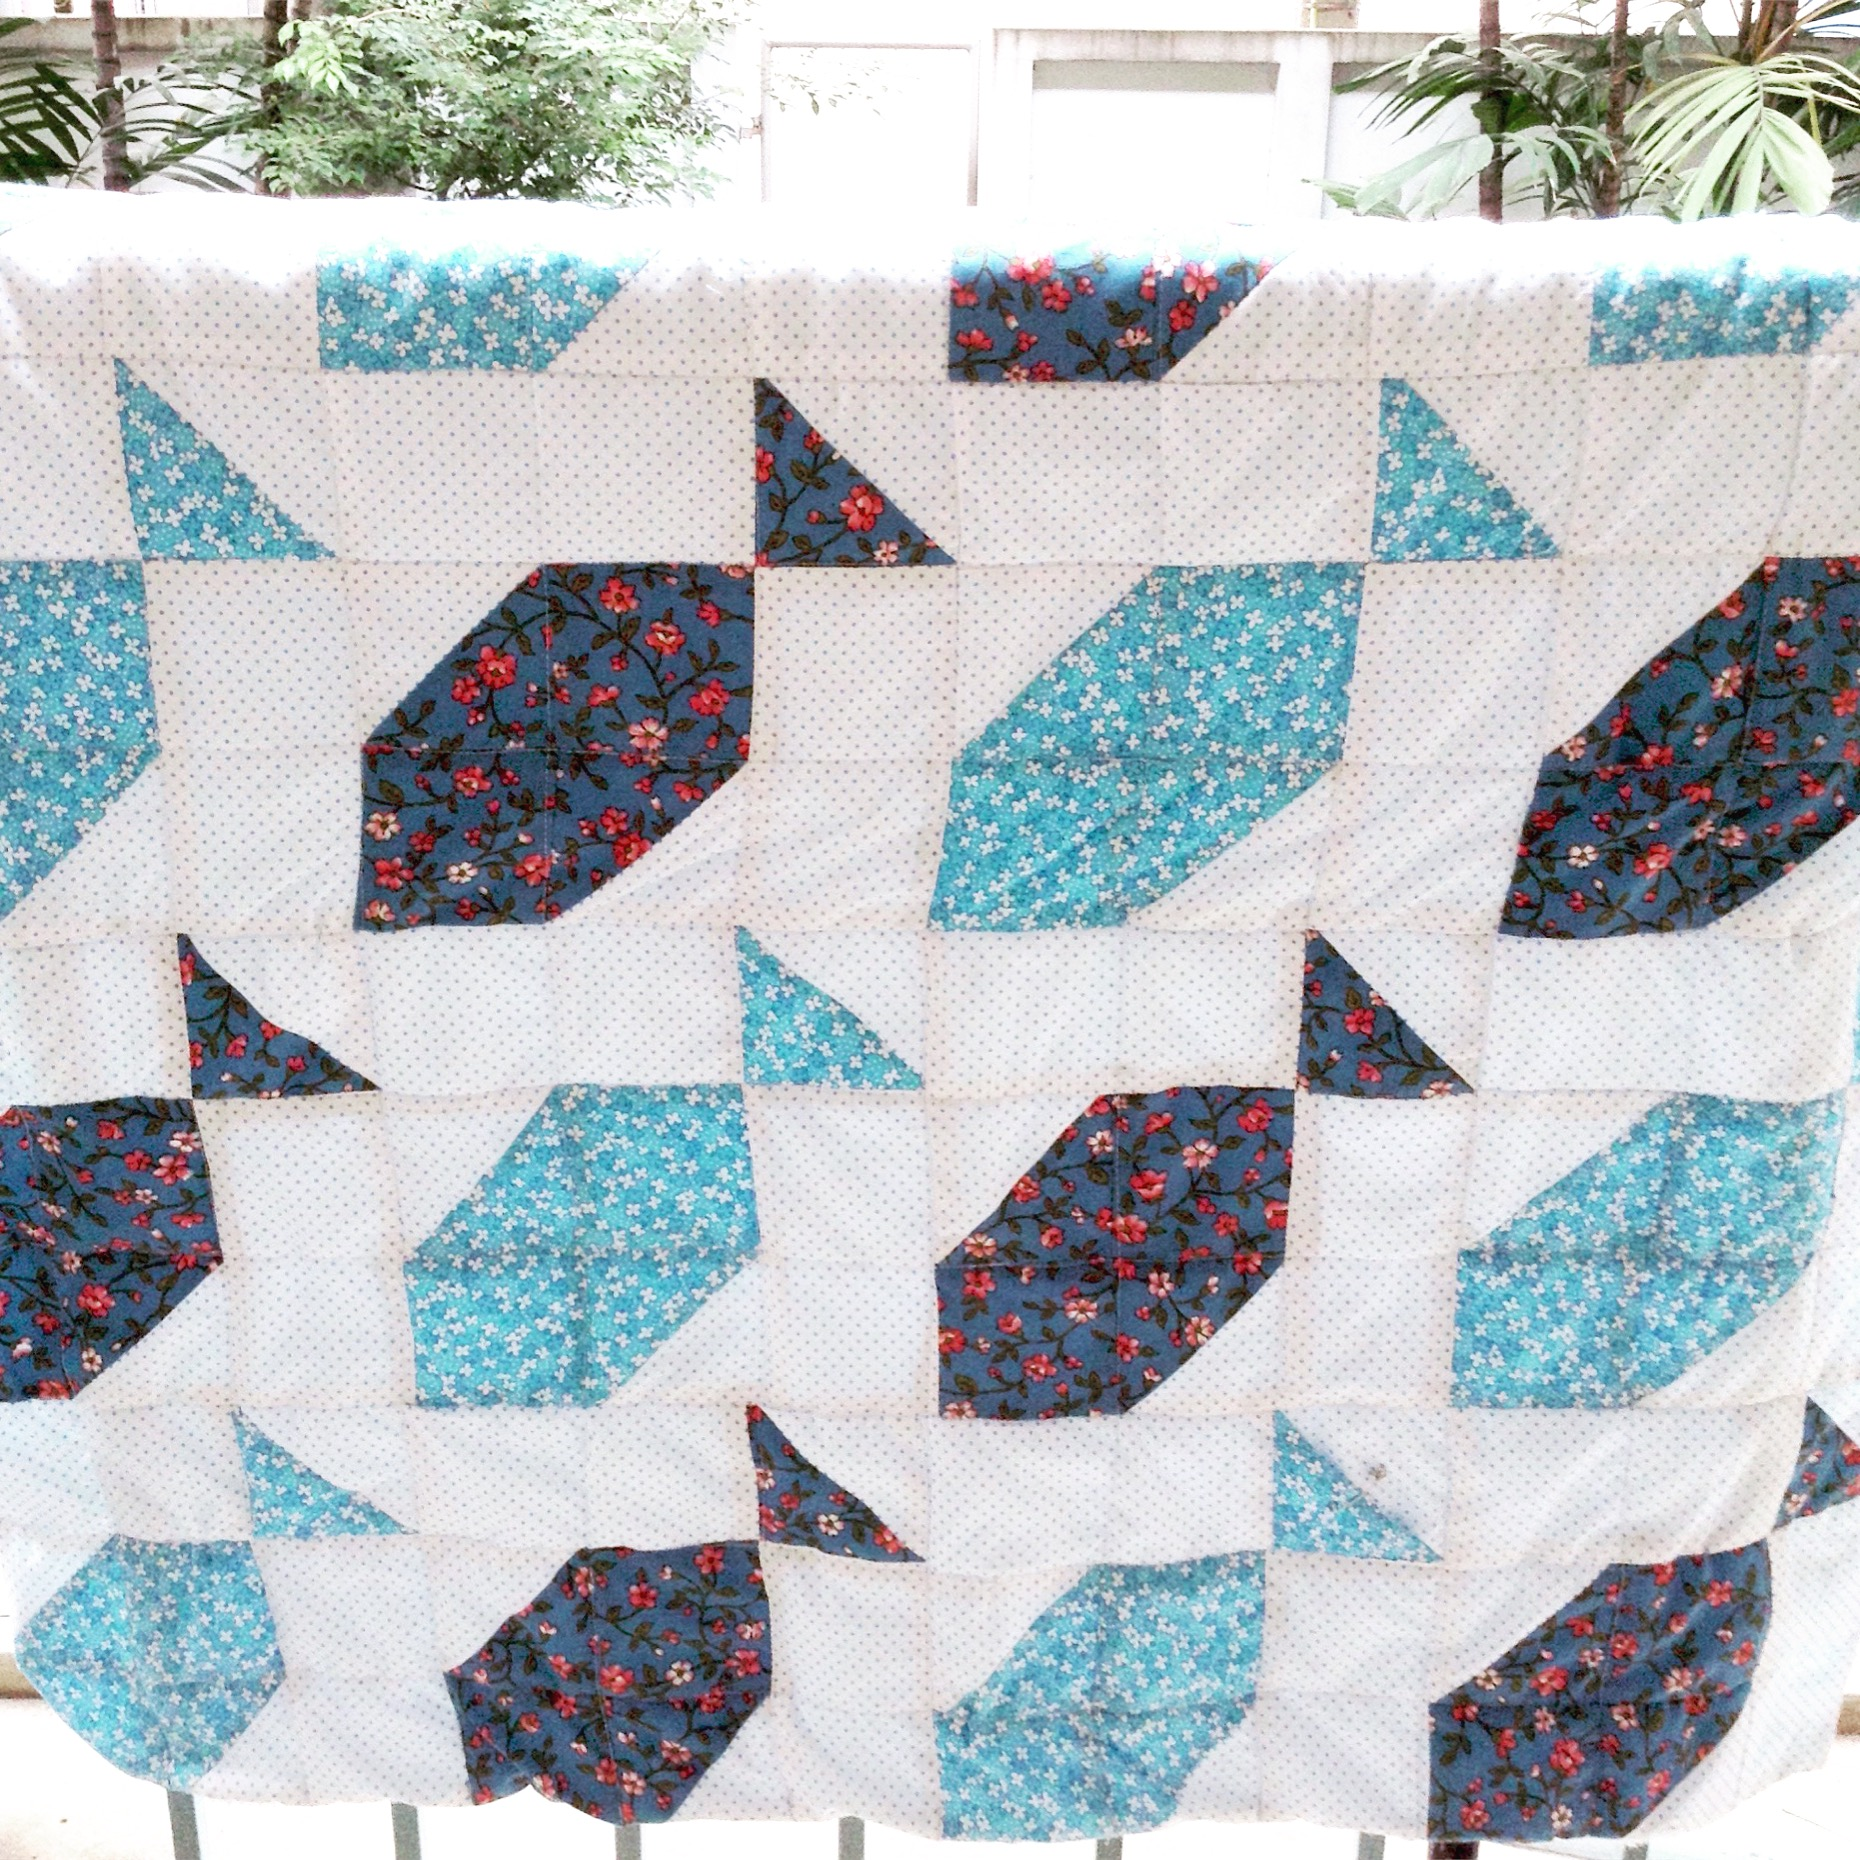 New Obsession: Quilting!